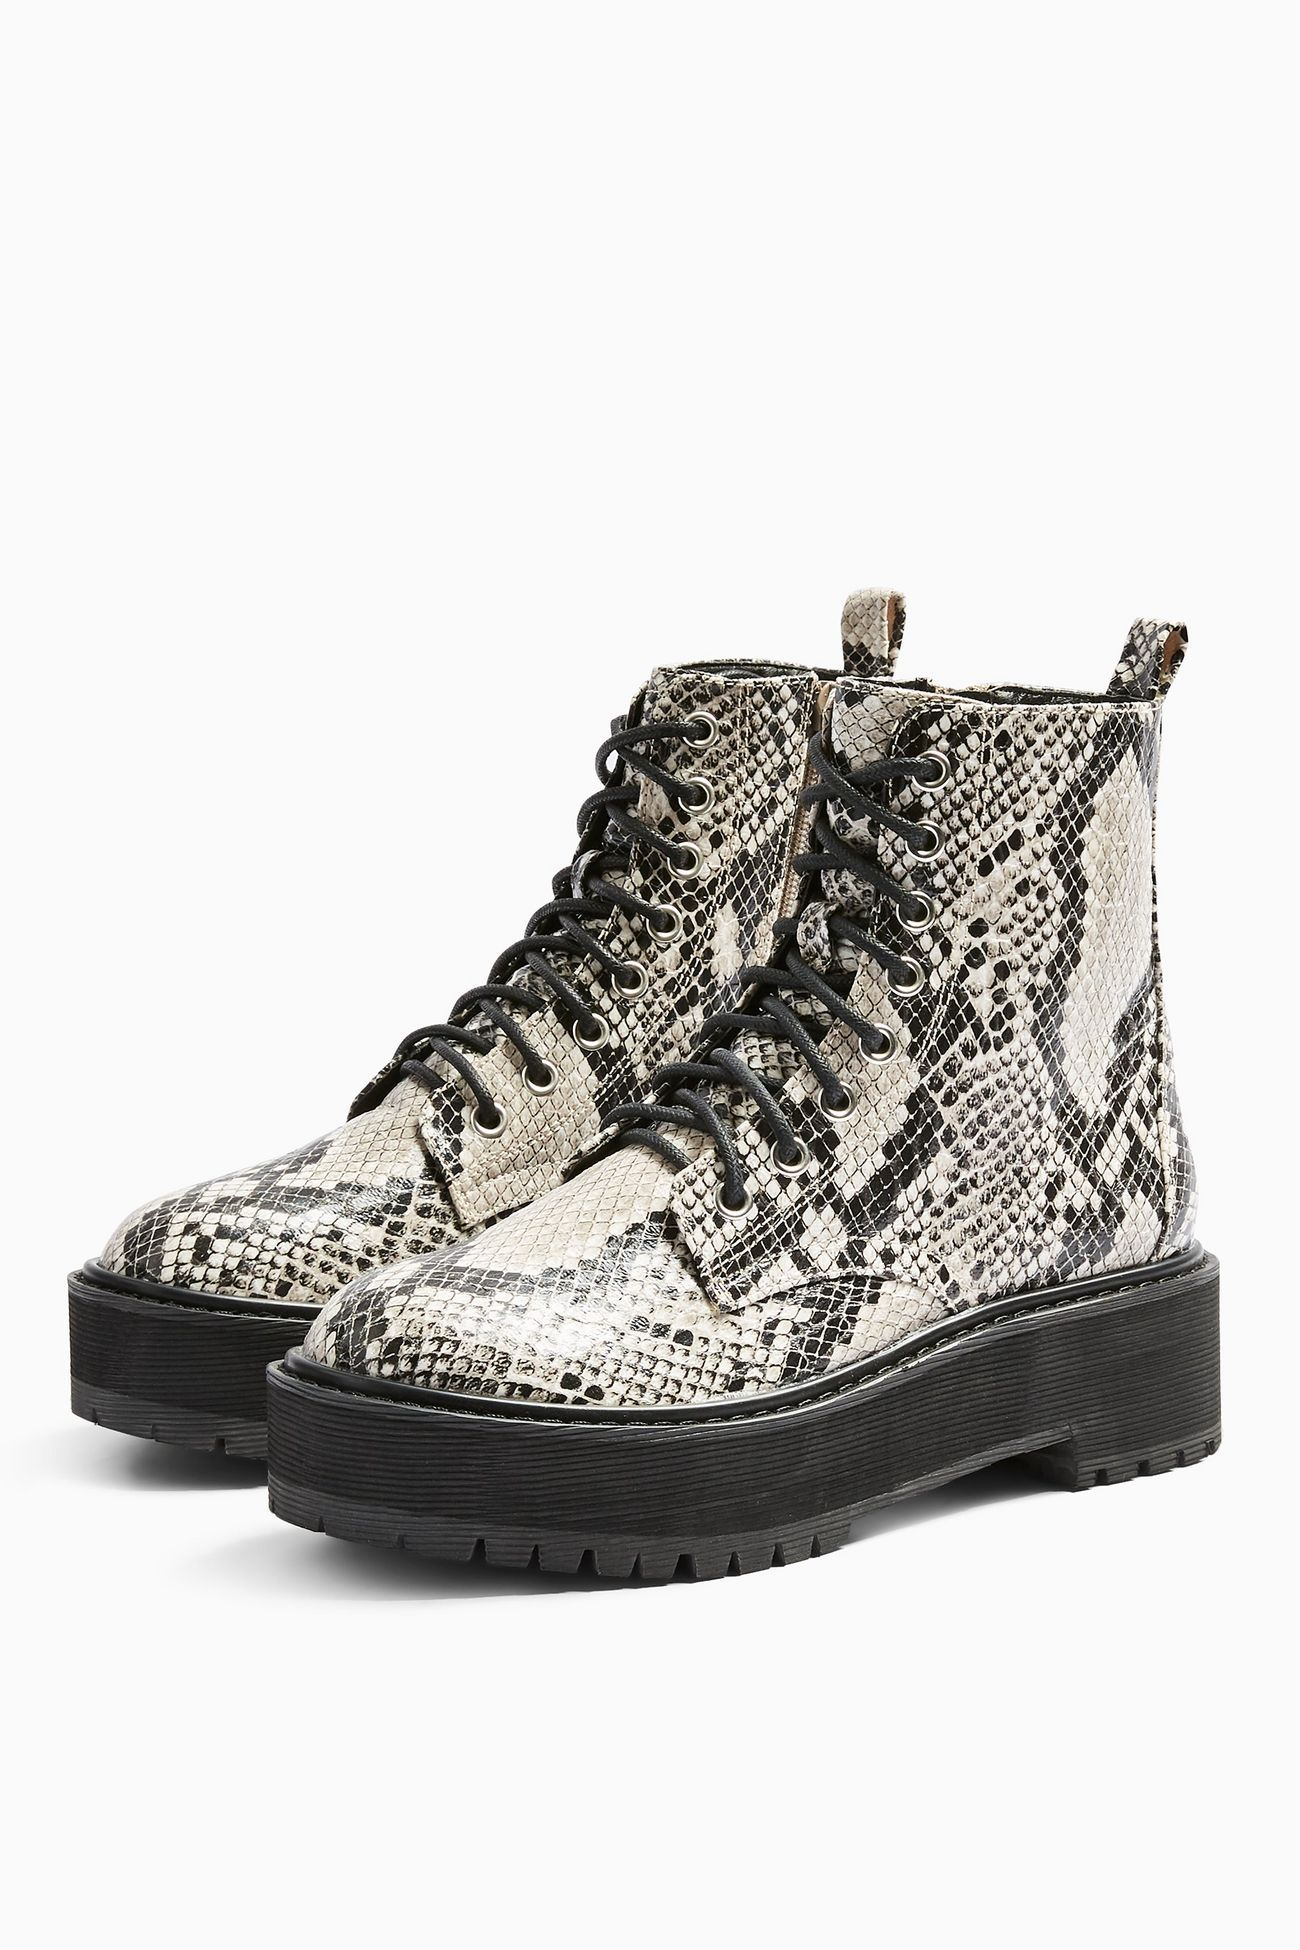 Boots, Lace up boots, Snake shoes outfit